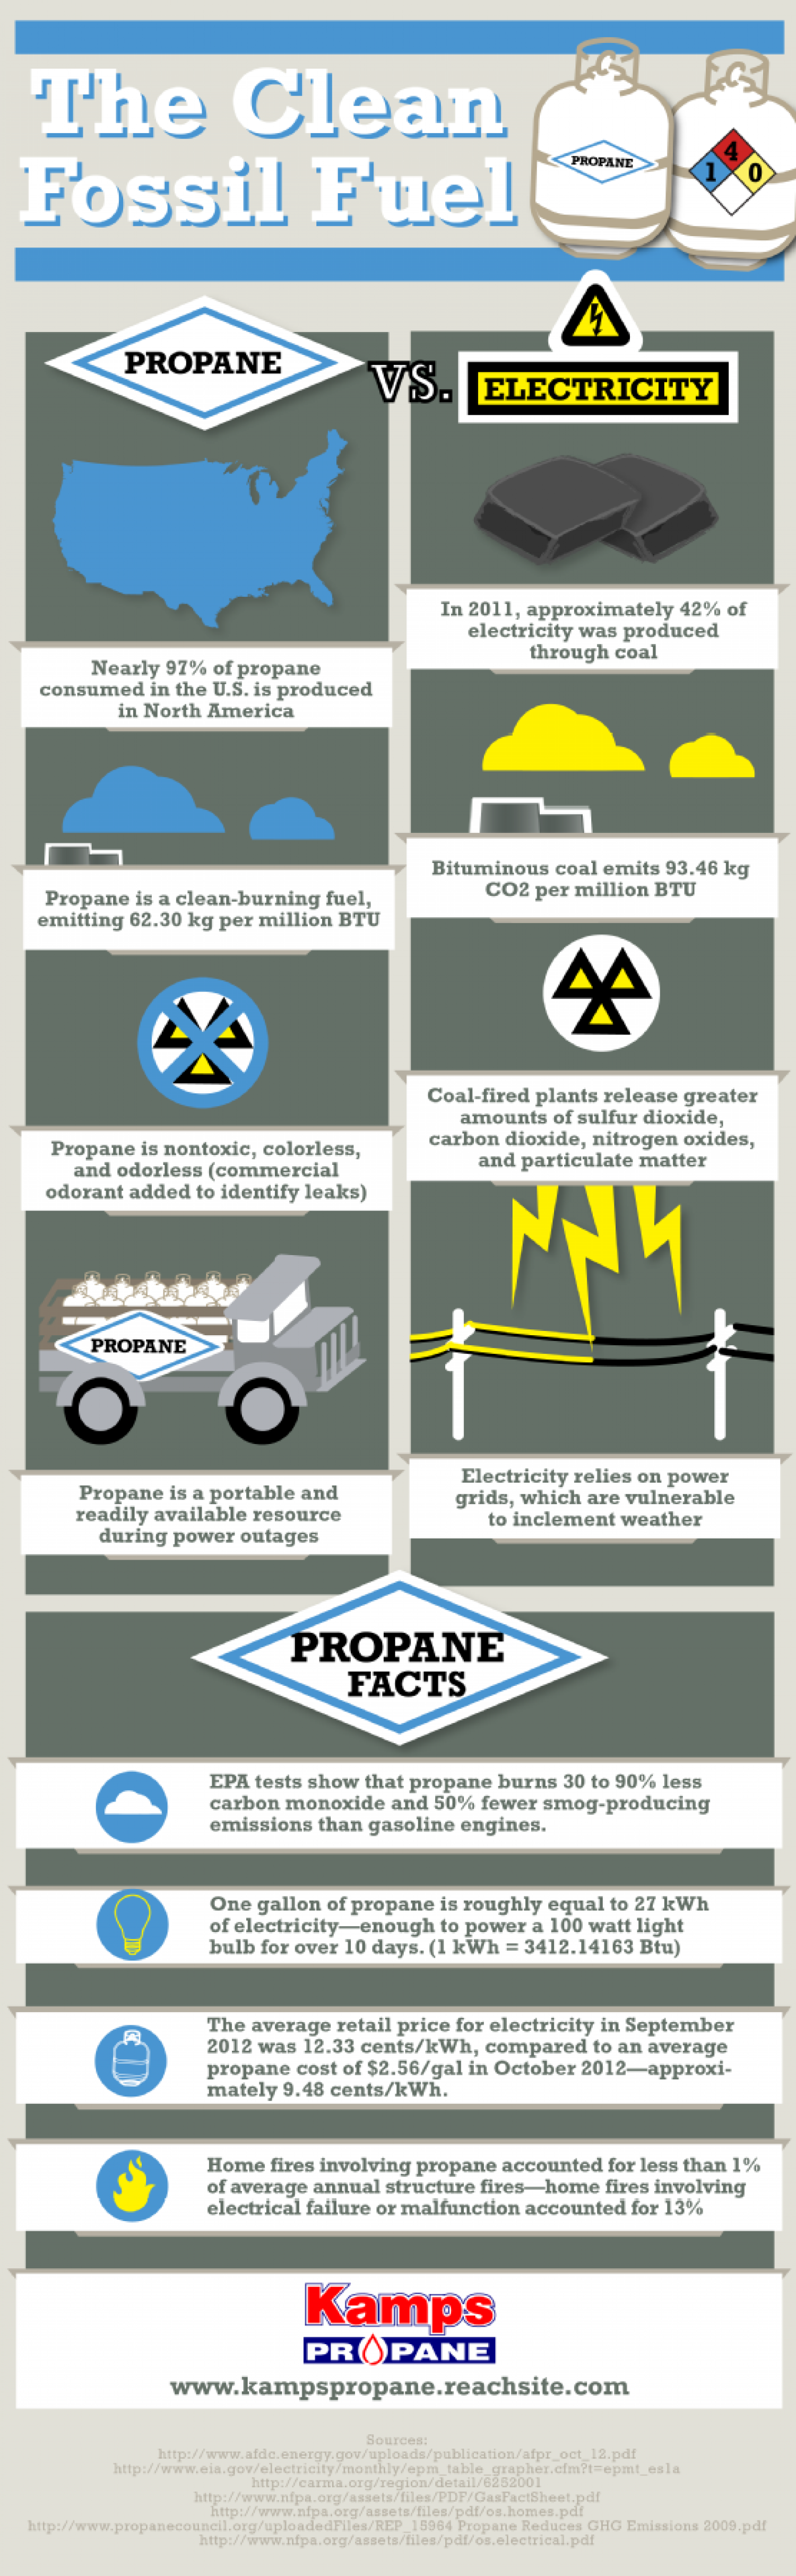 Propane: The Clean Fossil Fuel Infographic